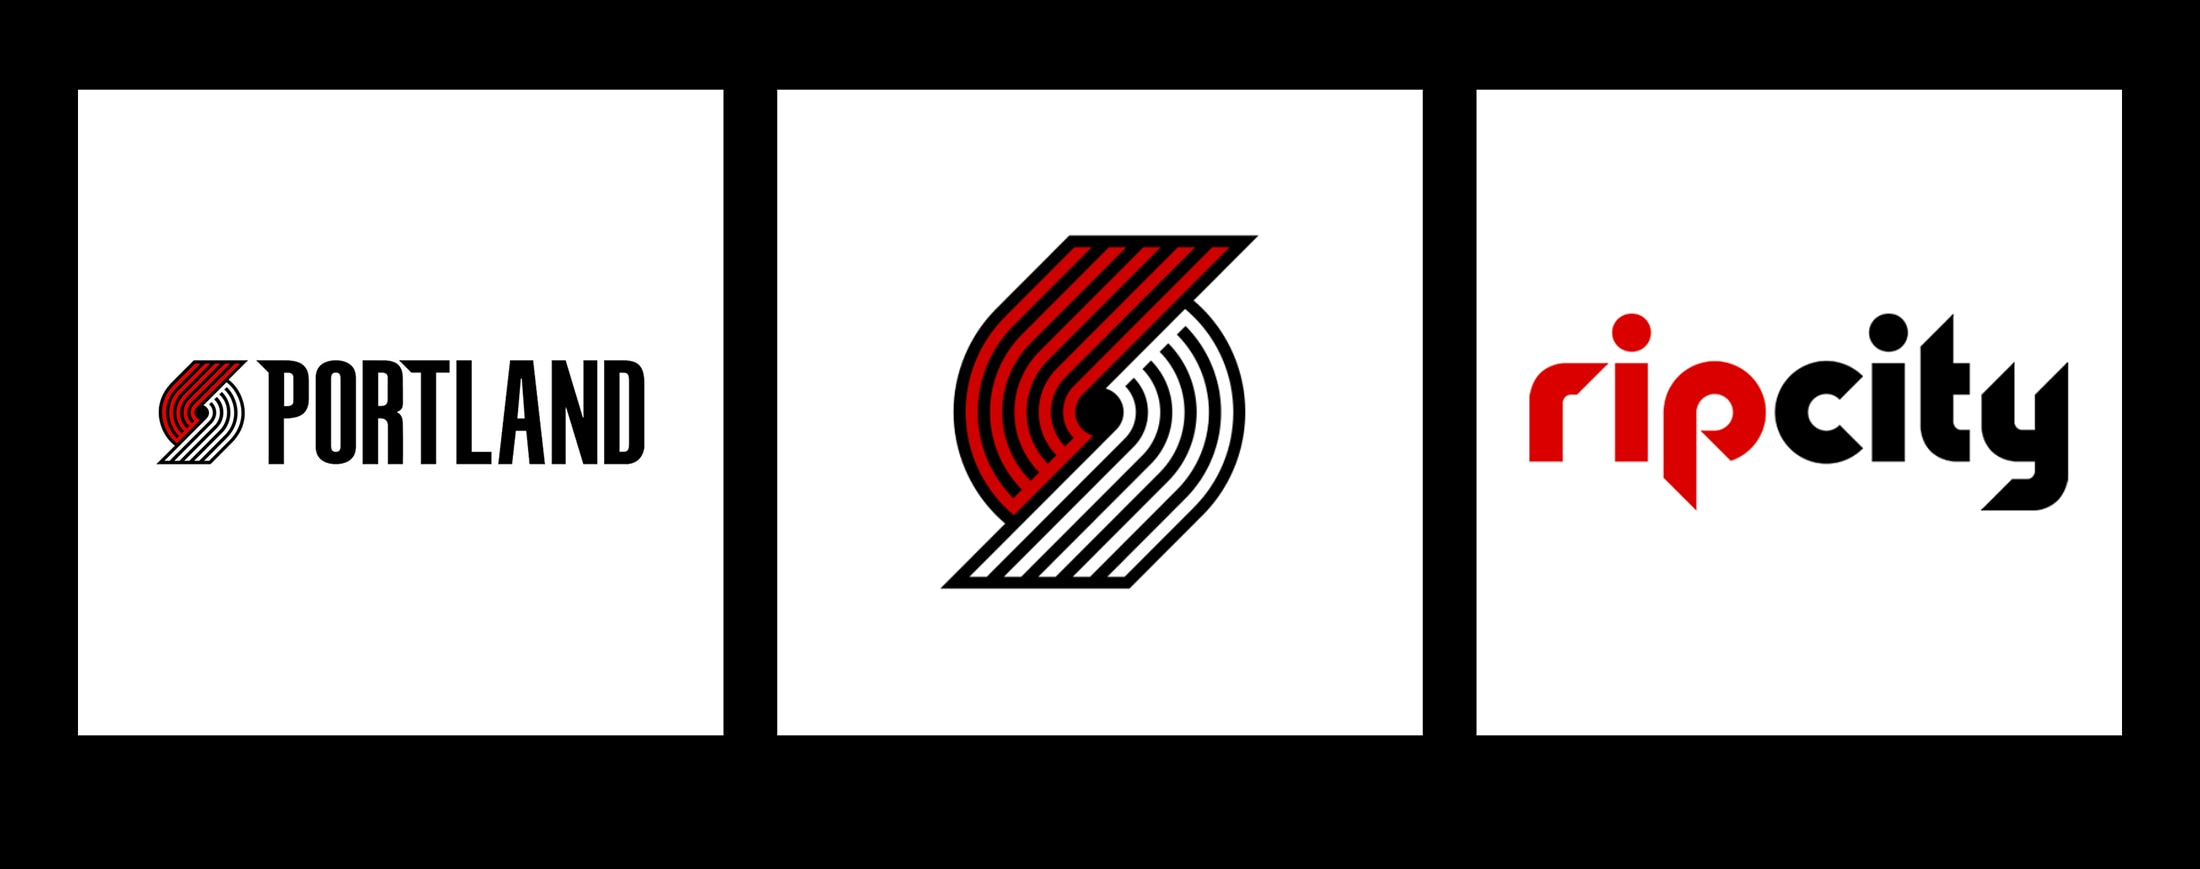 Trail Blazers Update Pinwheel Prepare For Jersey Changes Portland